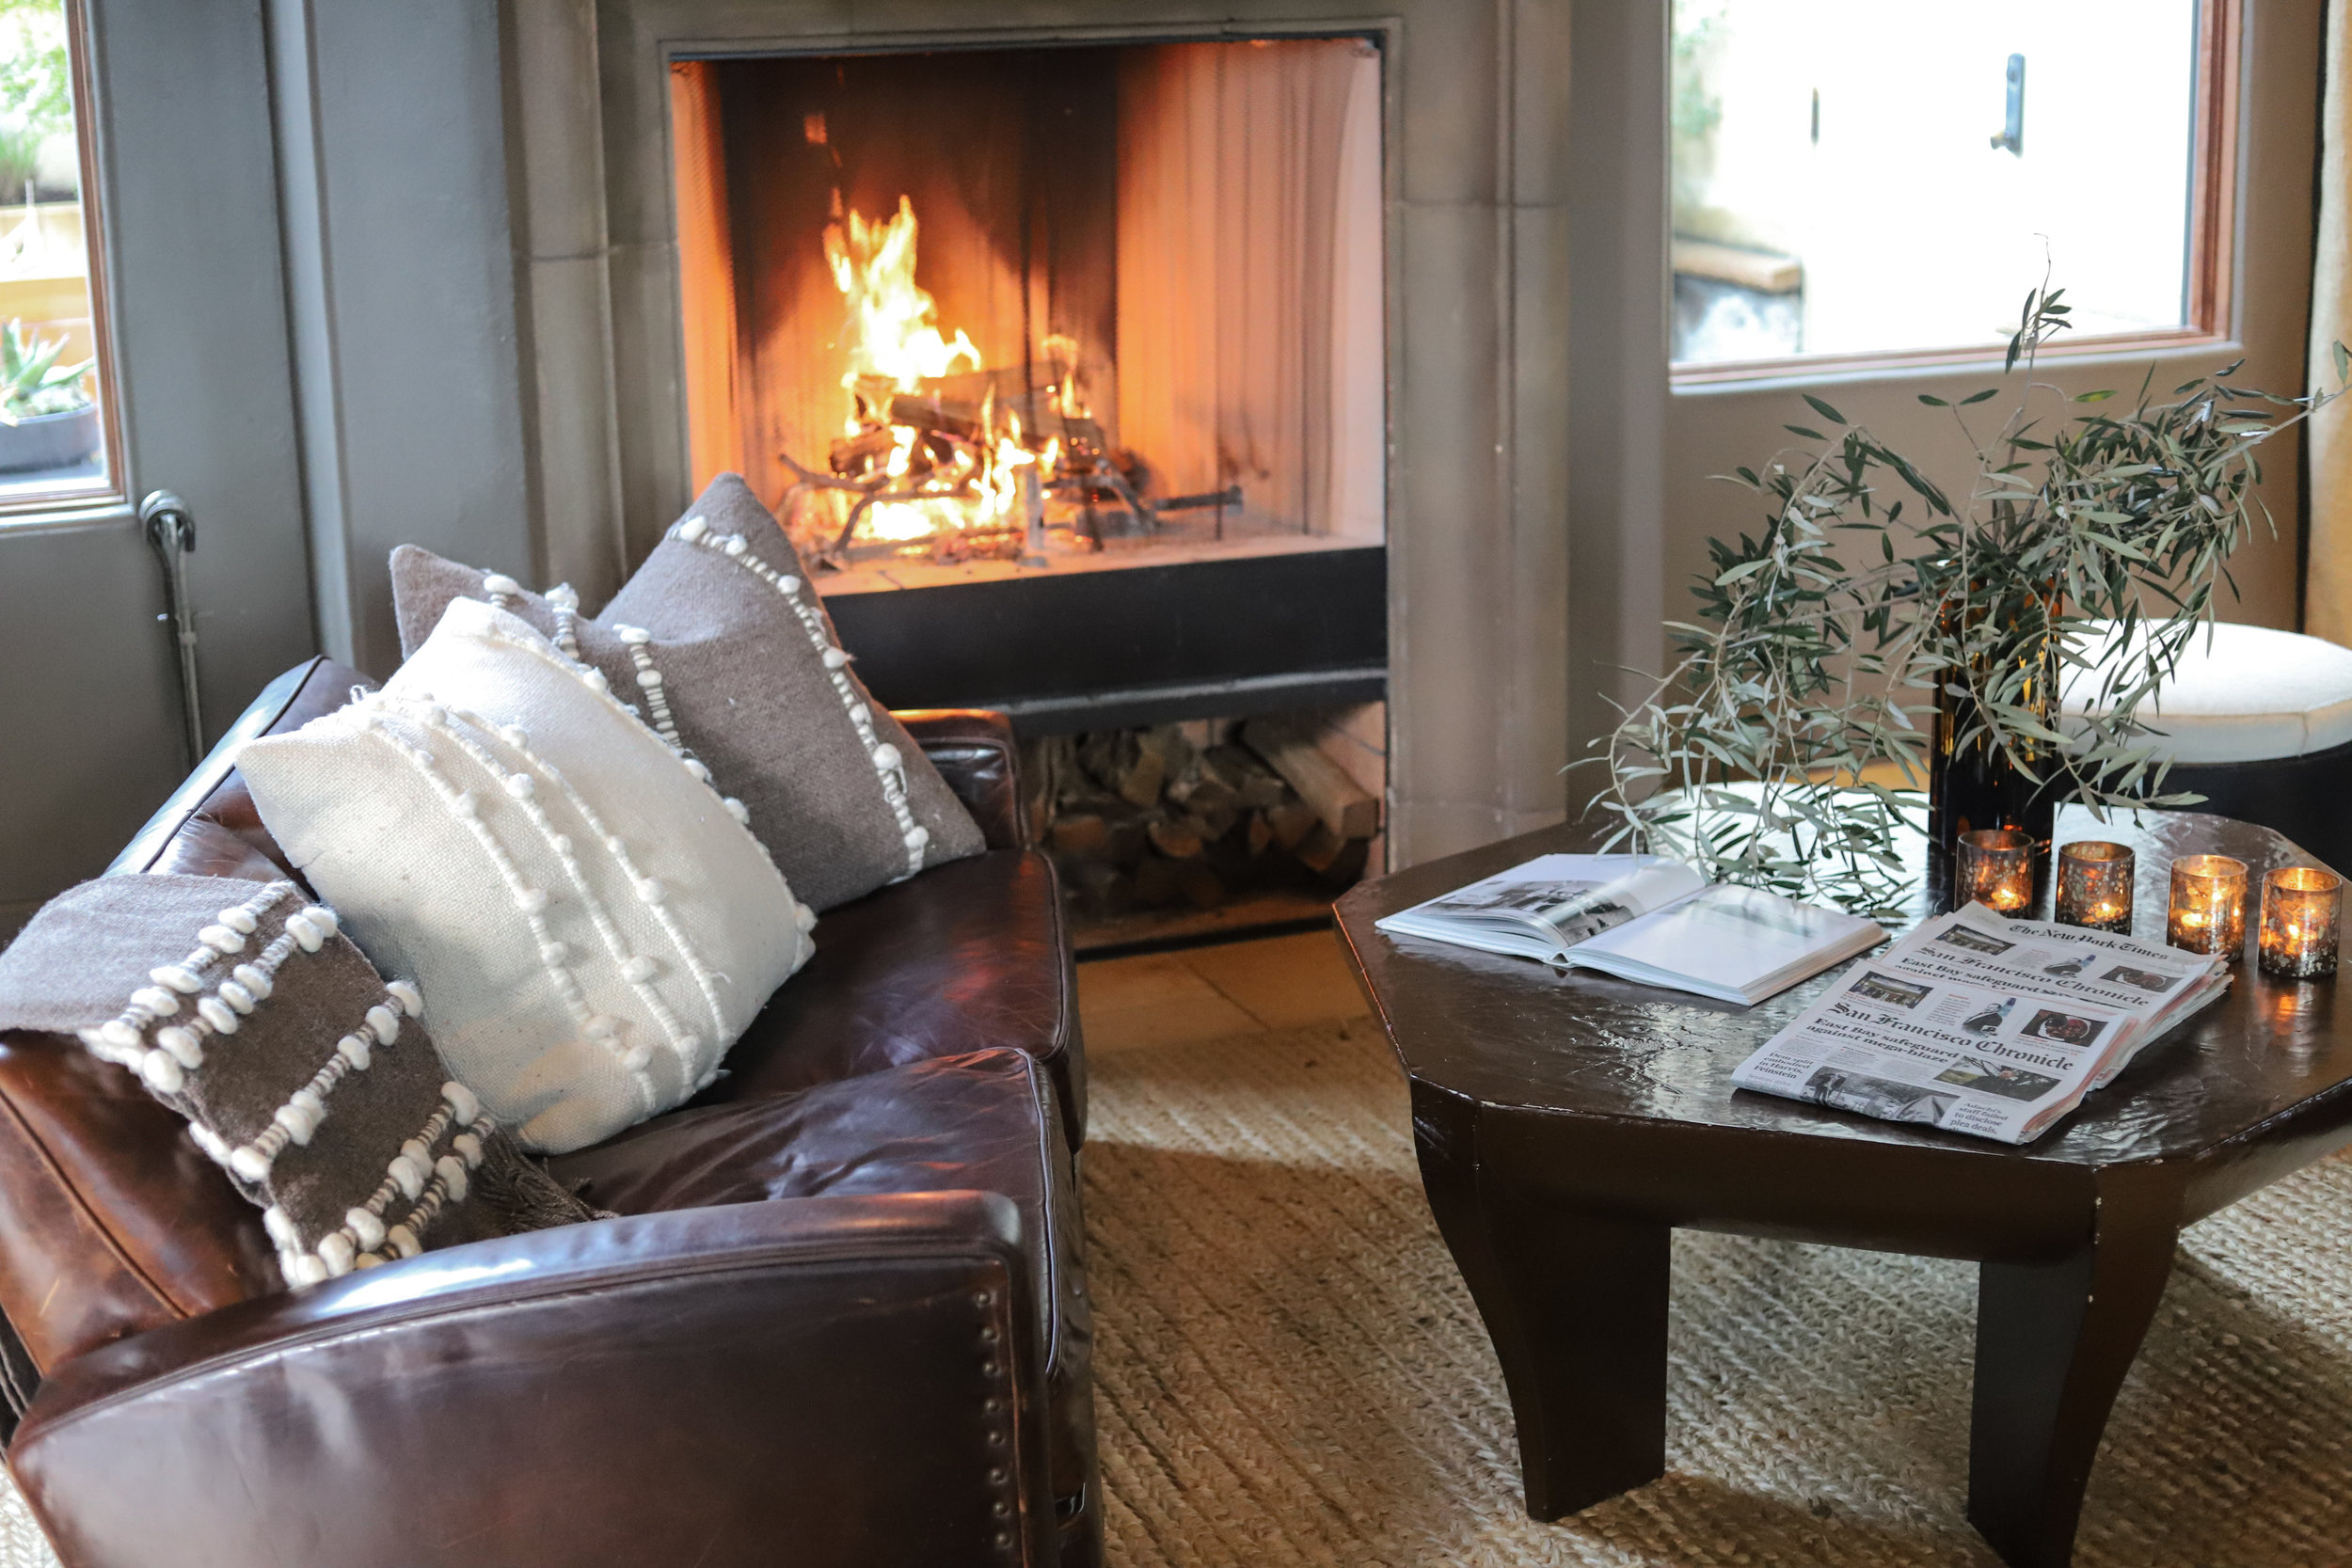 where to stay in yountville, north block hotel,  where to stay in napa valley, sonoma, wine country, boutique hotel, travel blogger, lments of style,  ellemulenos, wine country